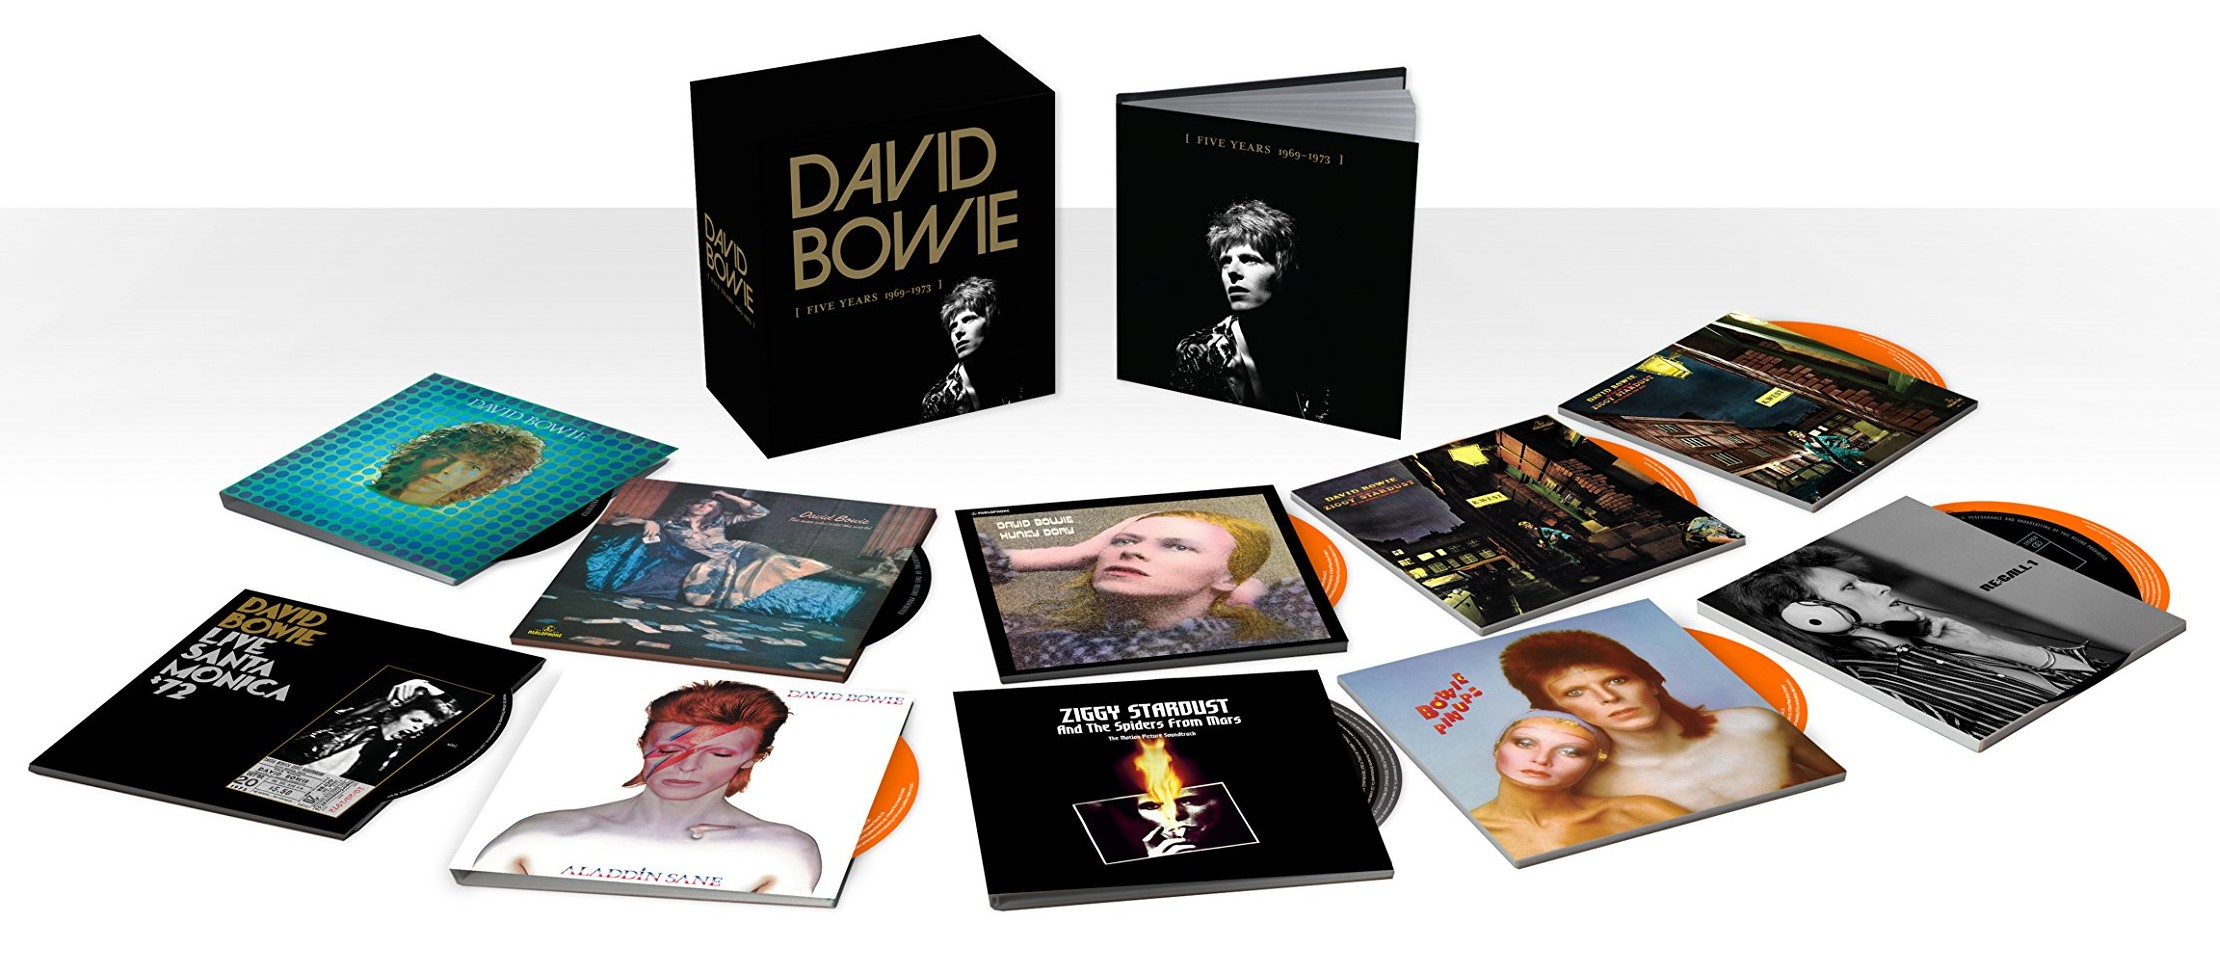 David Bowie / Five Years 1969-1973 CD box set